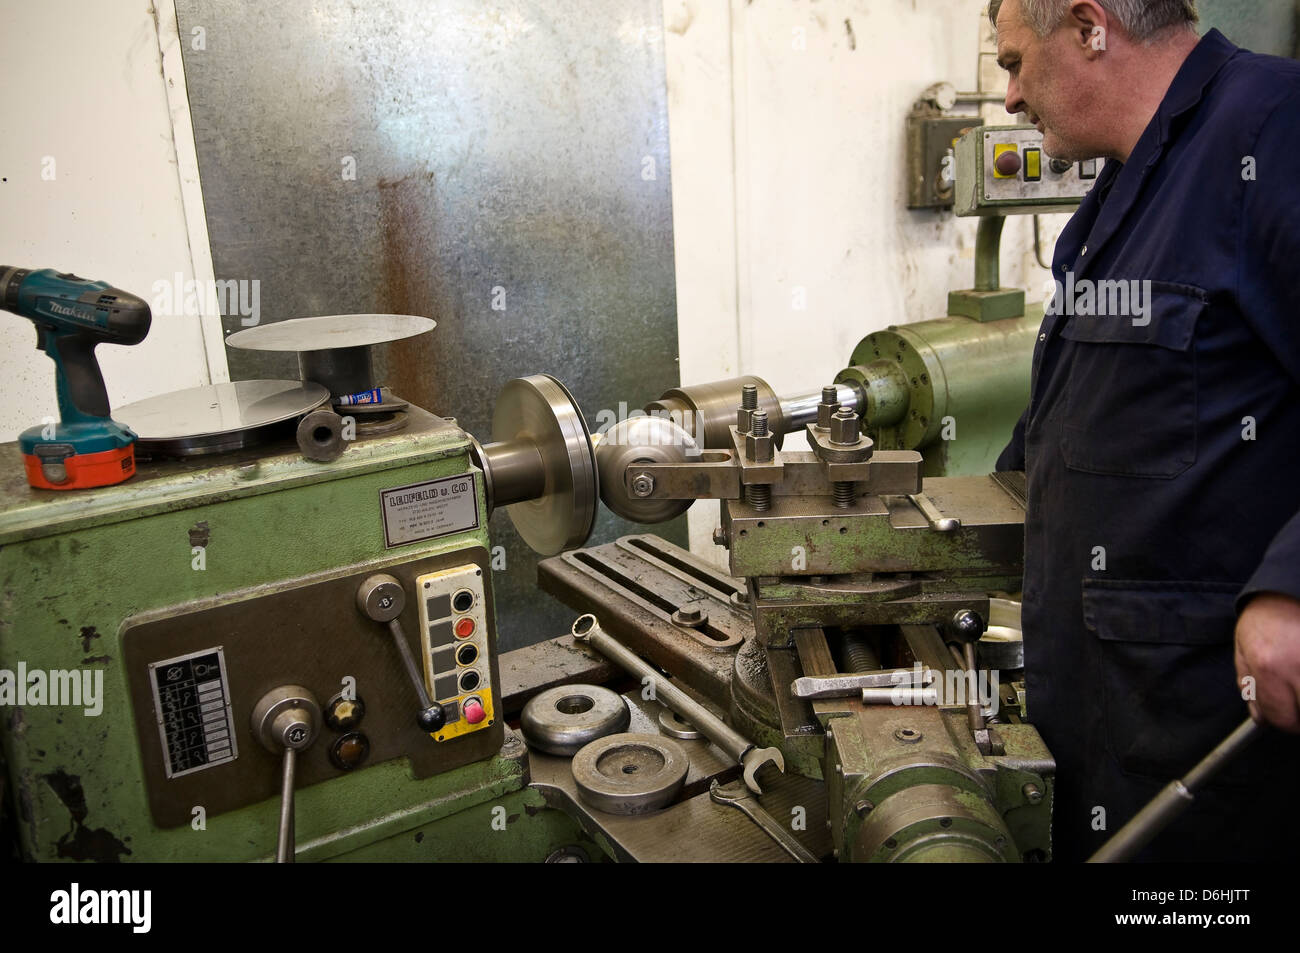 Flat steel plate being spun to create 3 dimensional object on an industrial metal spinning lathe. - Stock Image